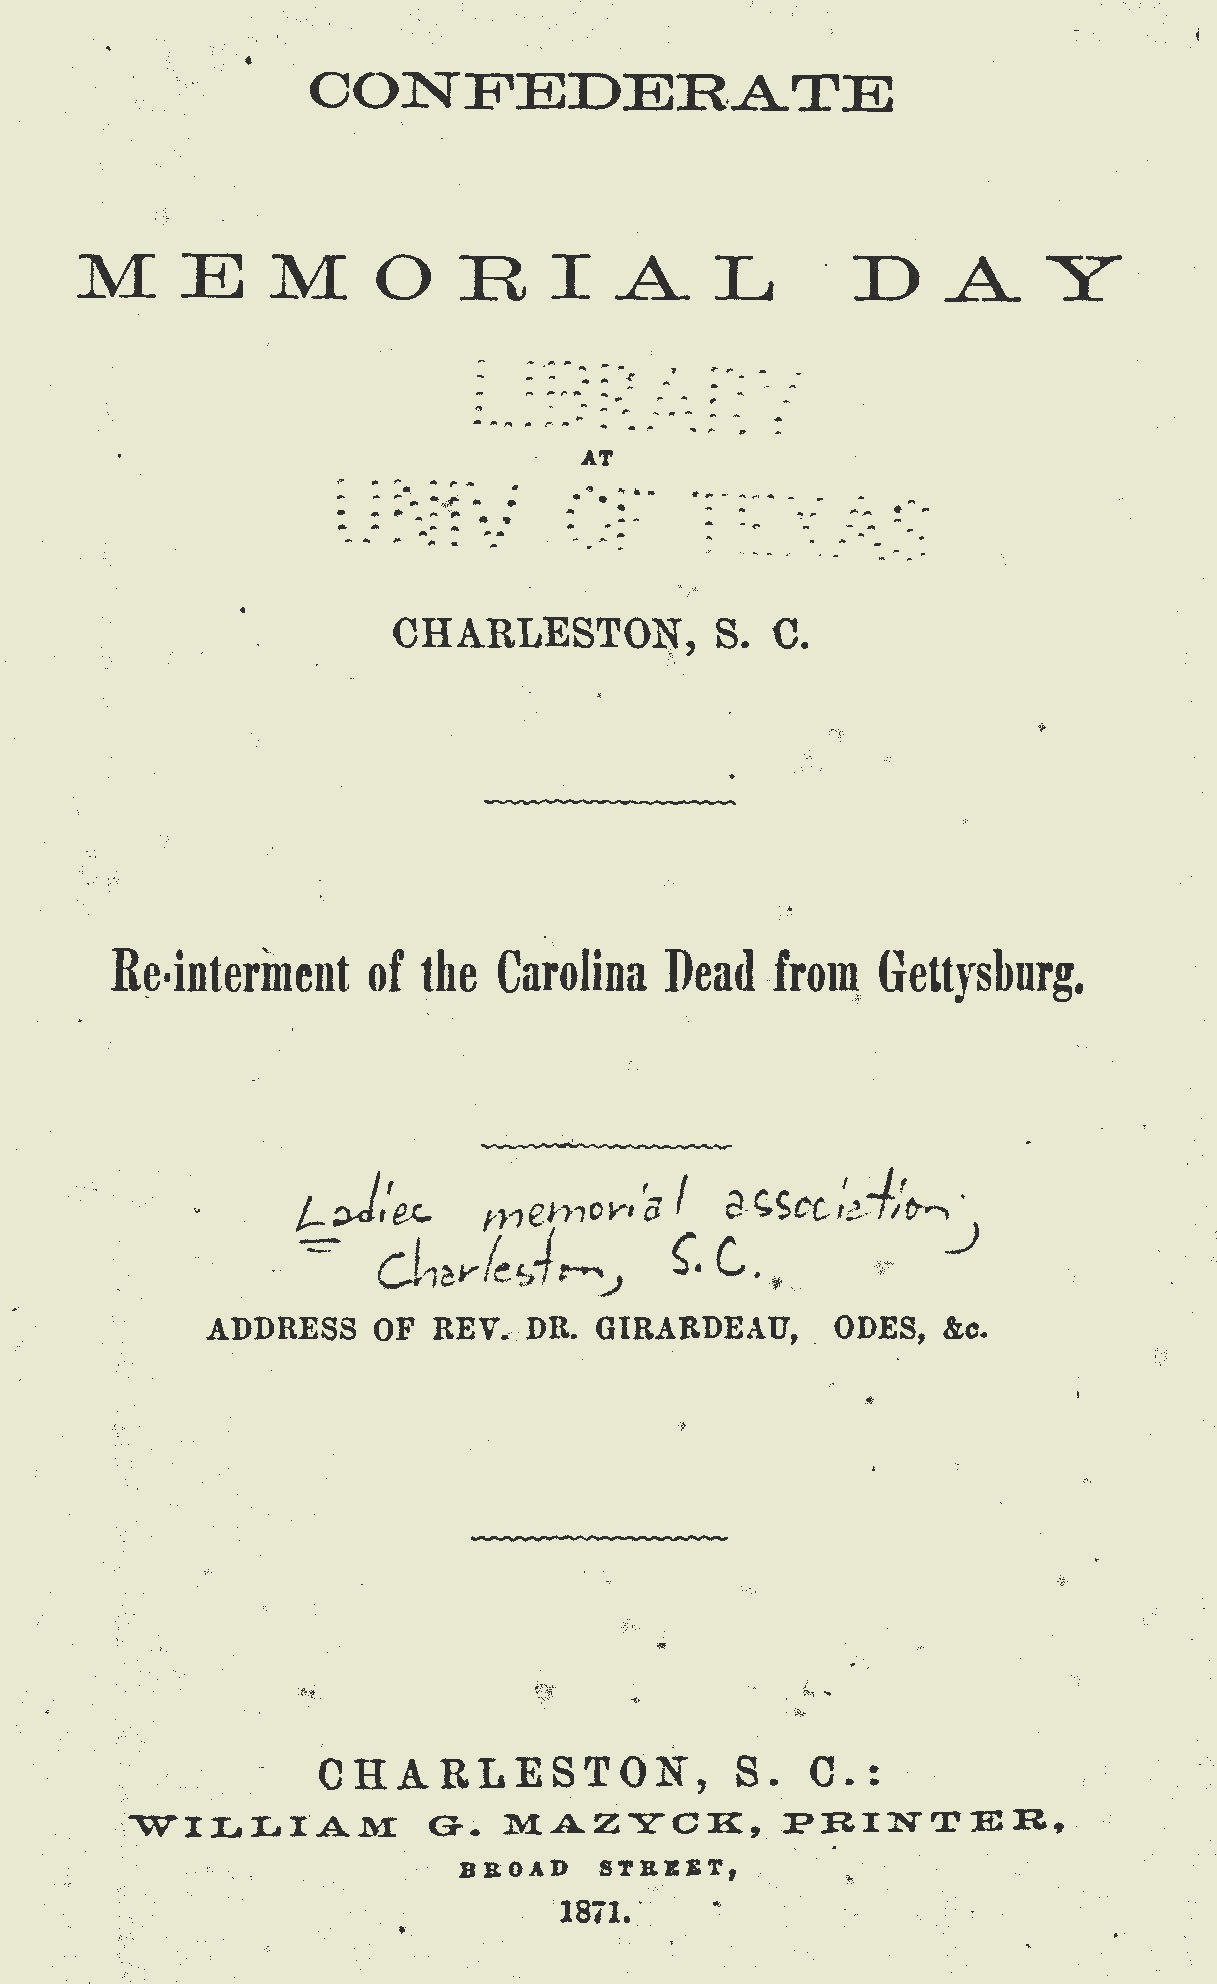 Girardeau, John Lafayette, Confederate Memorial Day Title Page.jpg